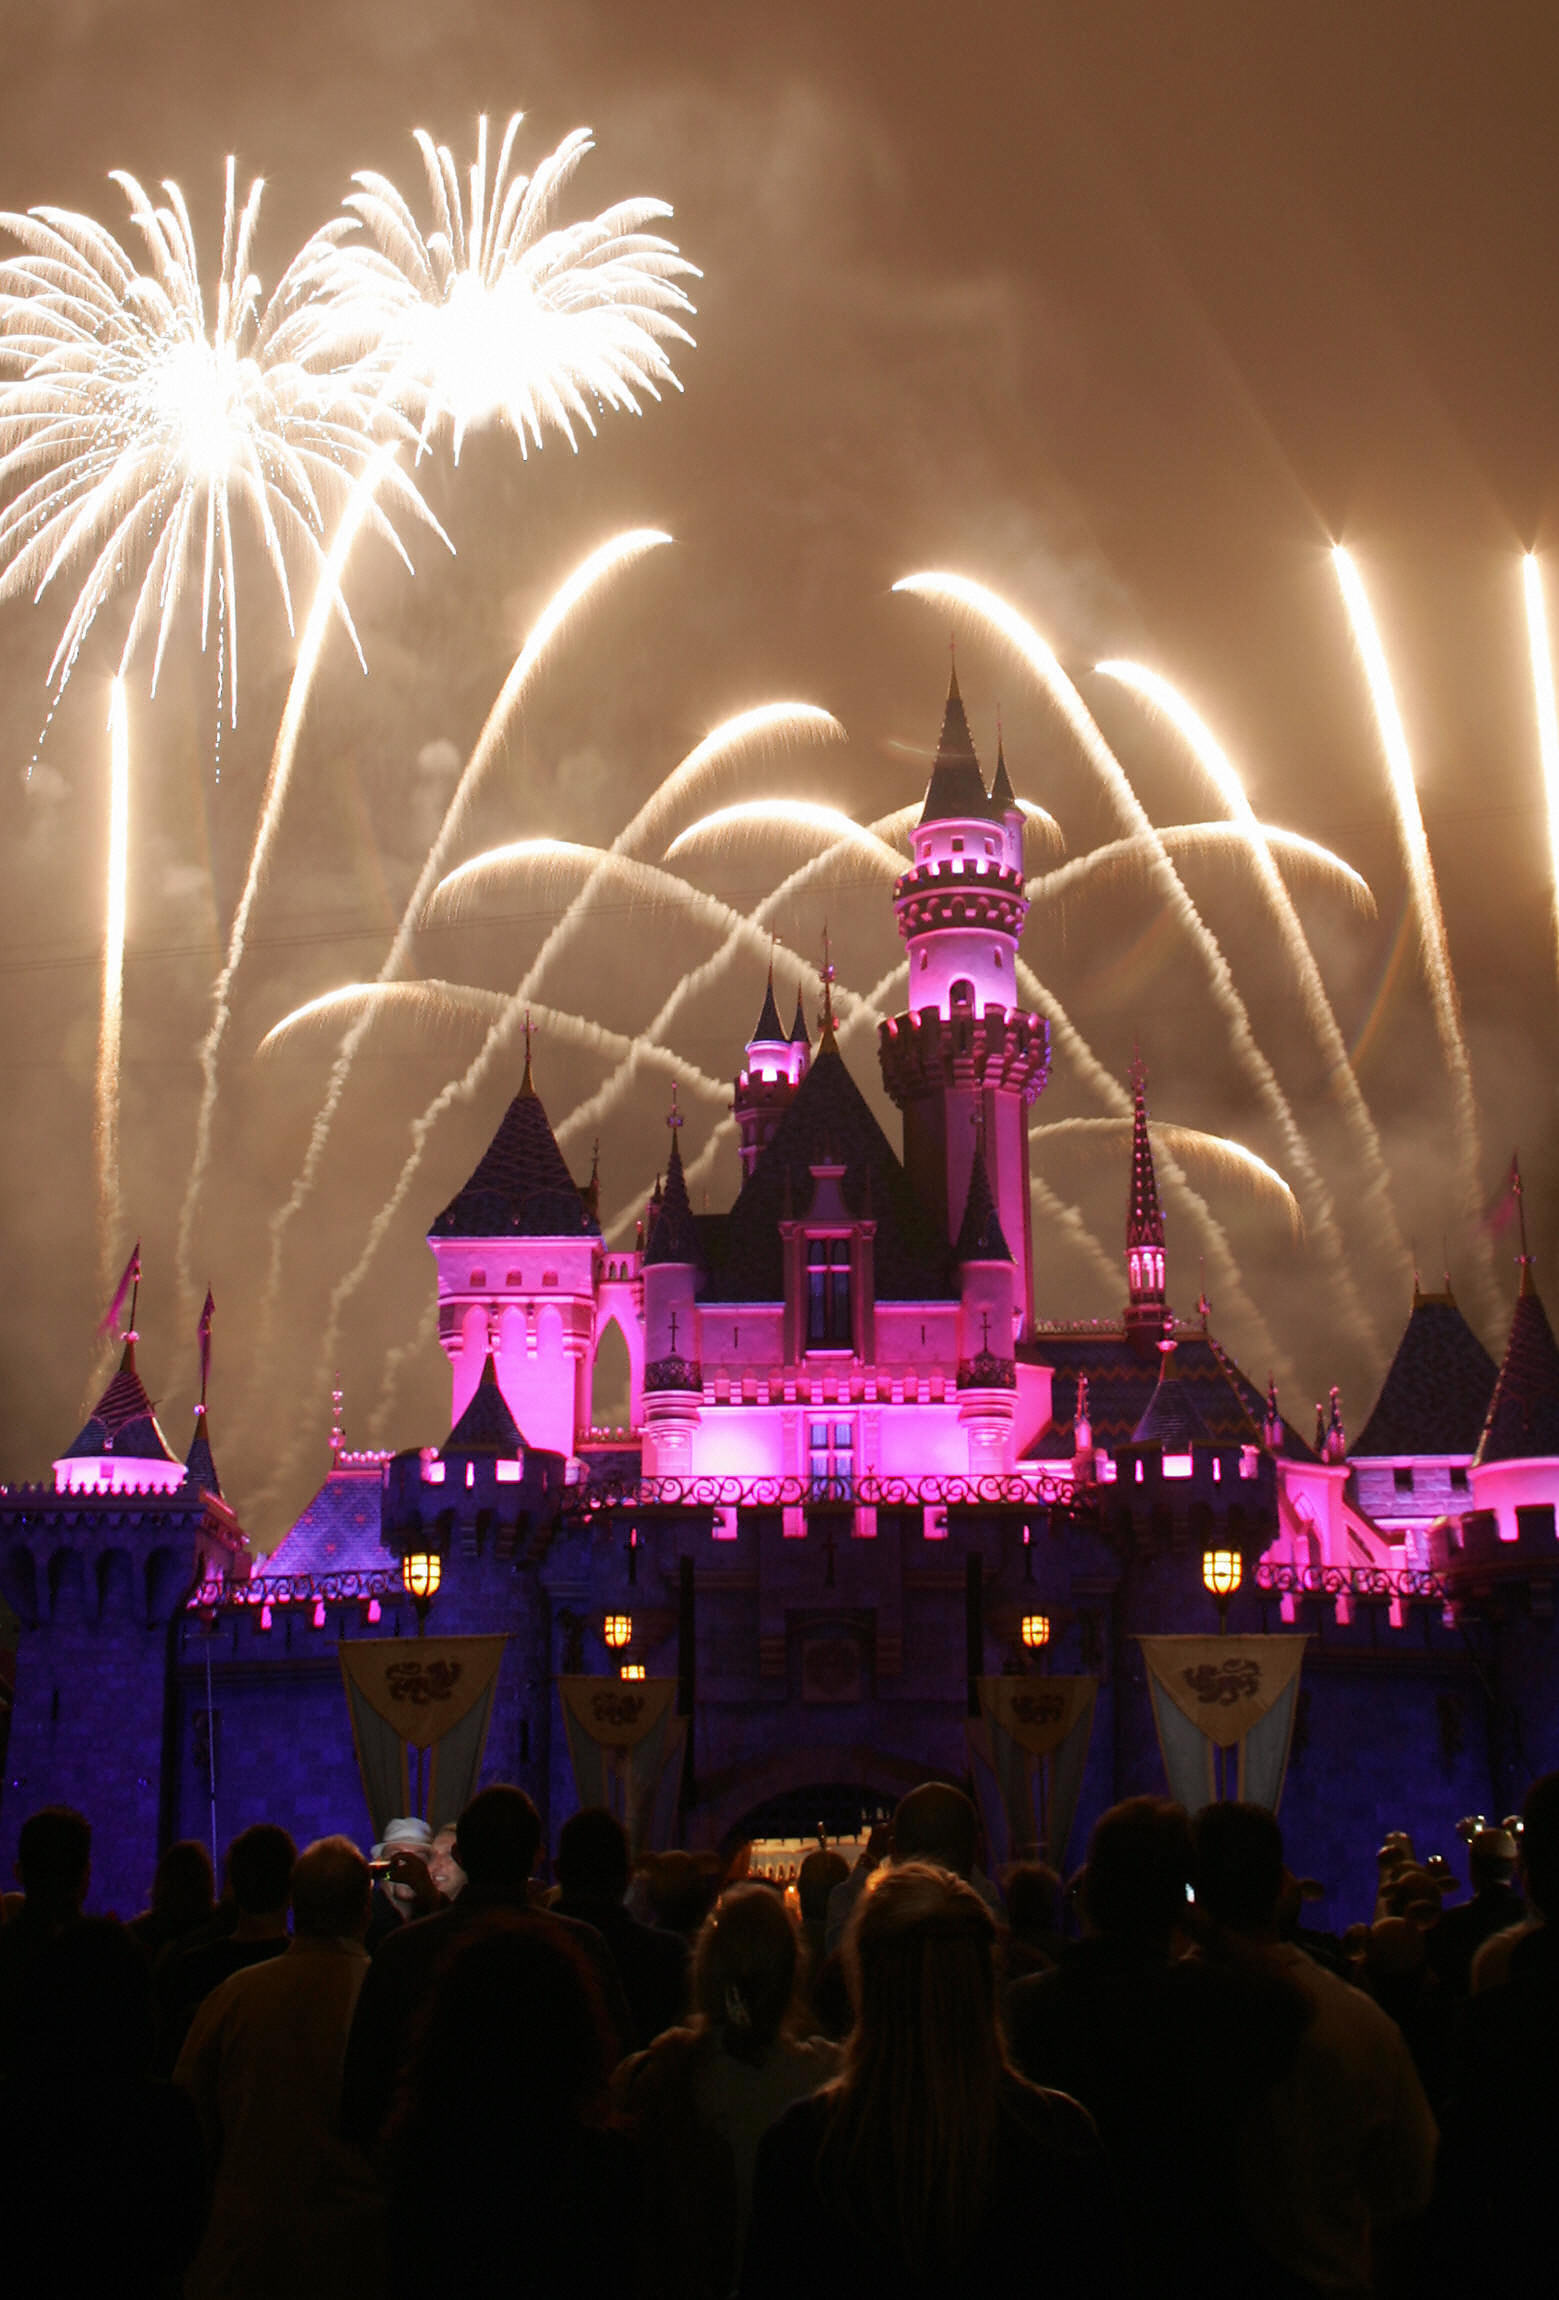 Disney fireworks, Disneyland, Disney World